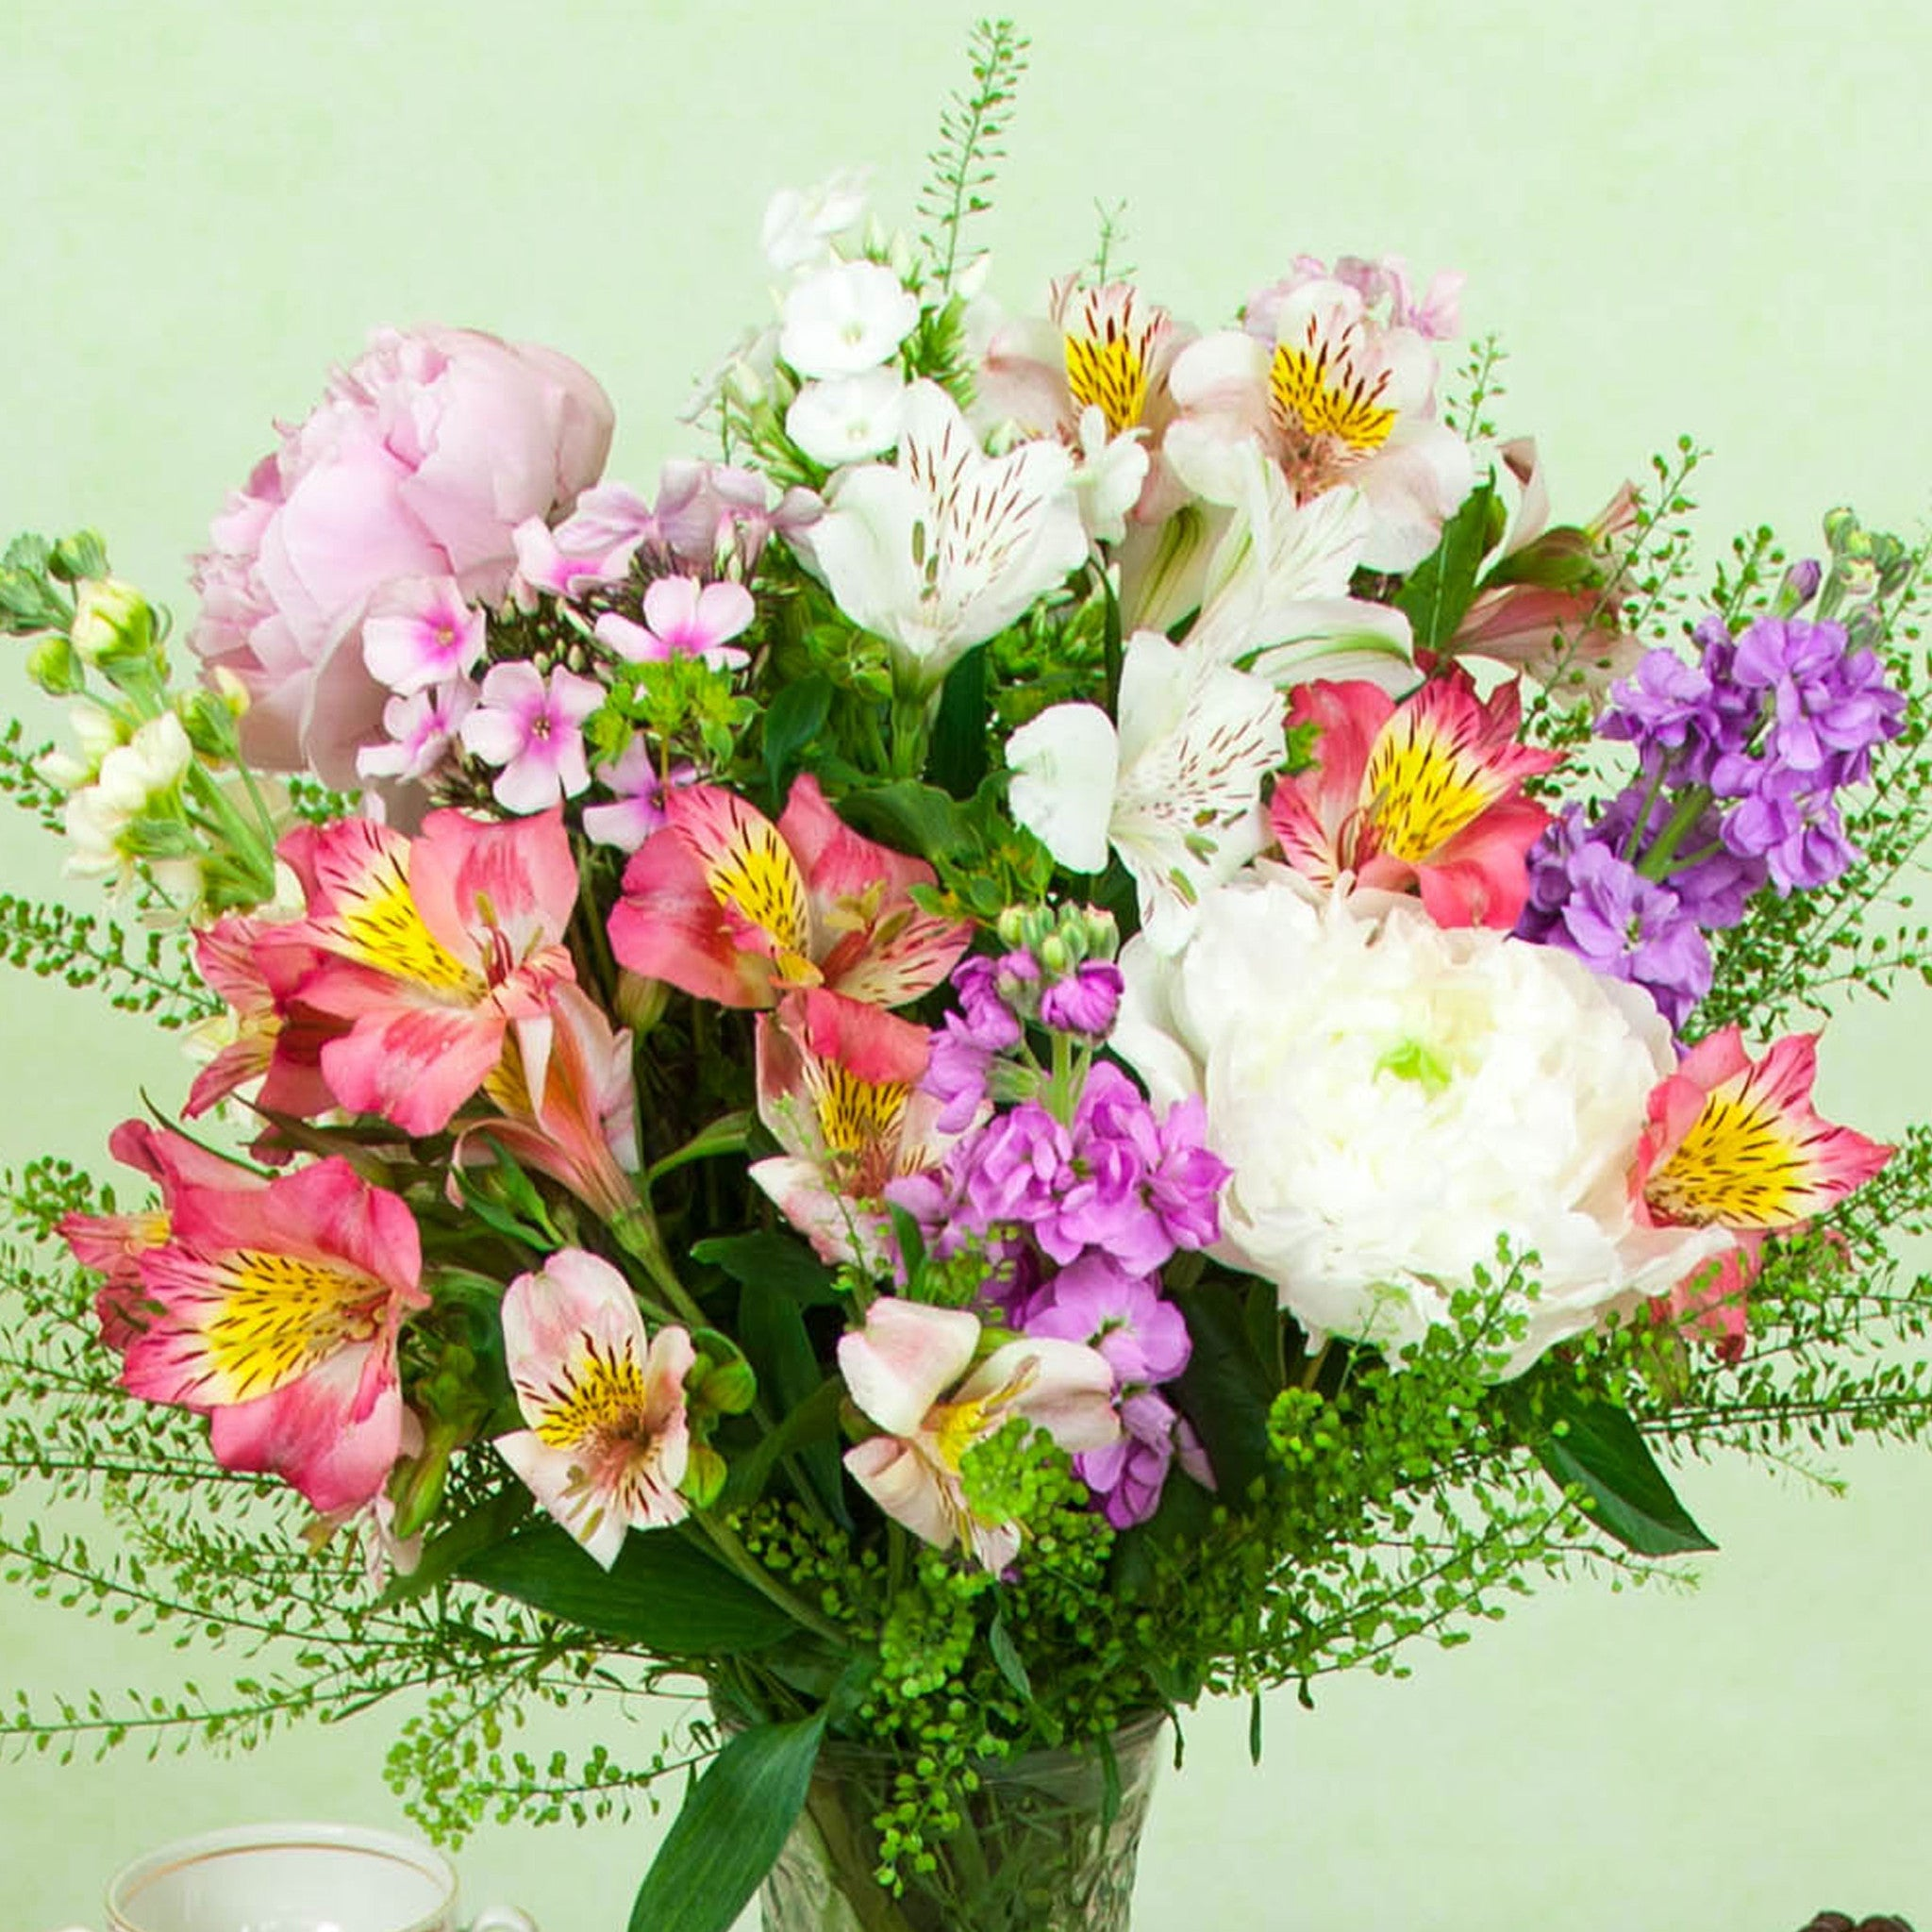 Uk flower delivery cheap image collections flower wallpaper hd cheap flowers valueflora uk next day delivery bouquets order online yes you can add alt tags izmirmasajfo Gallery